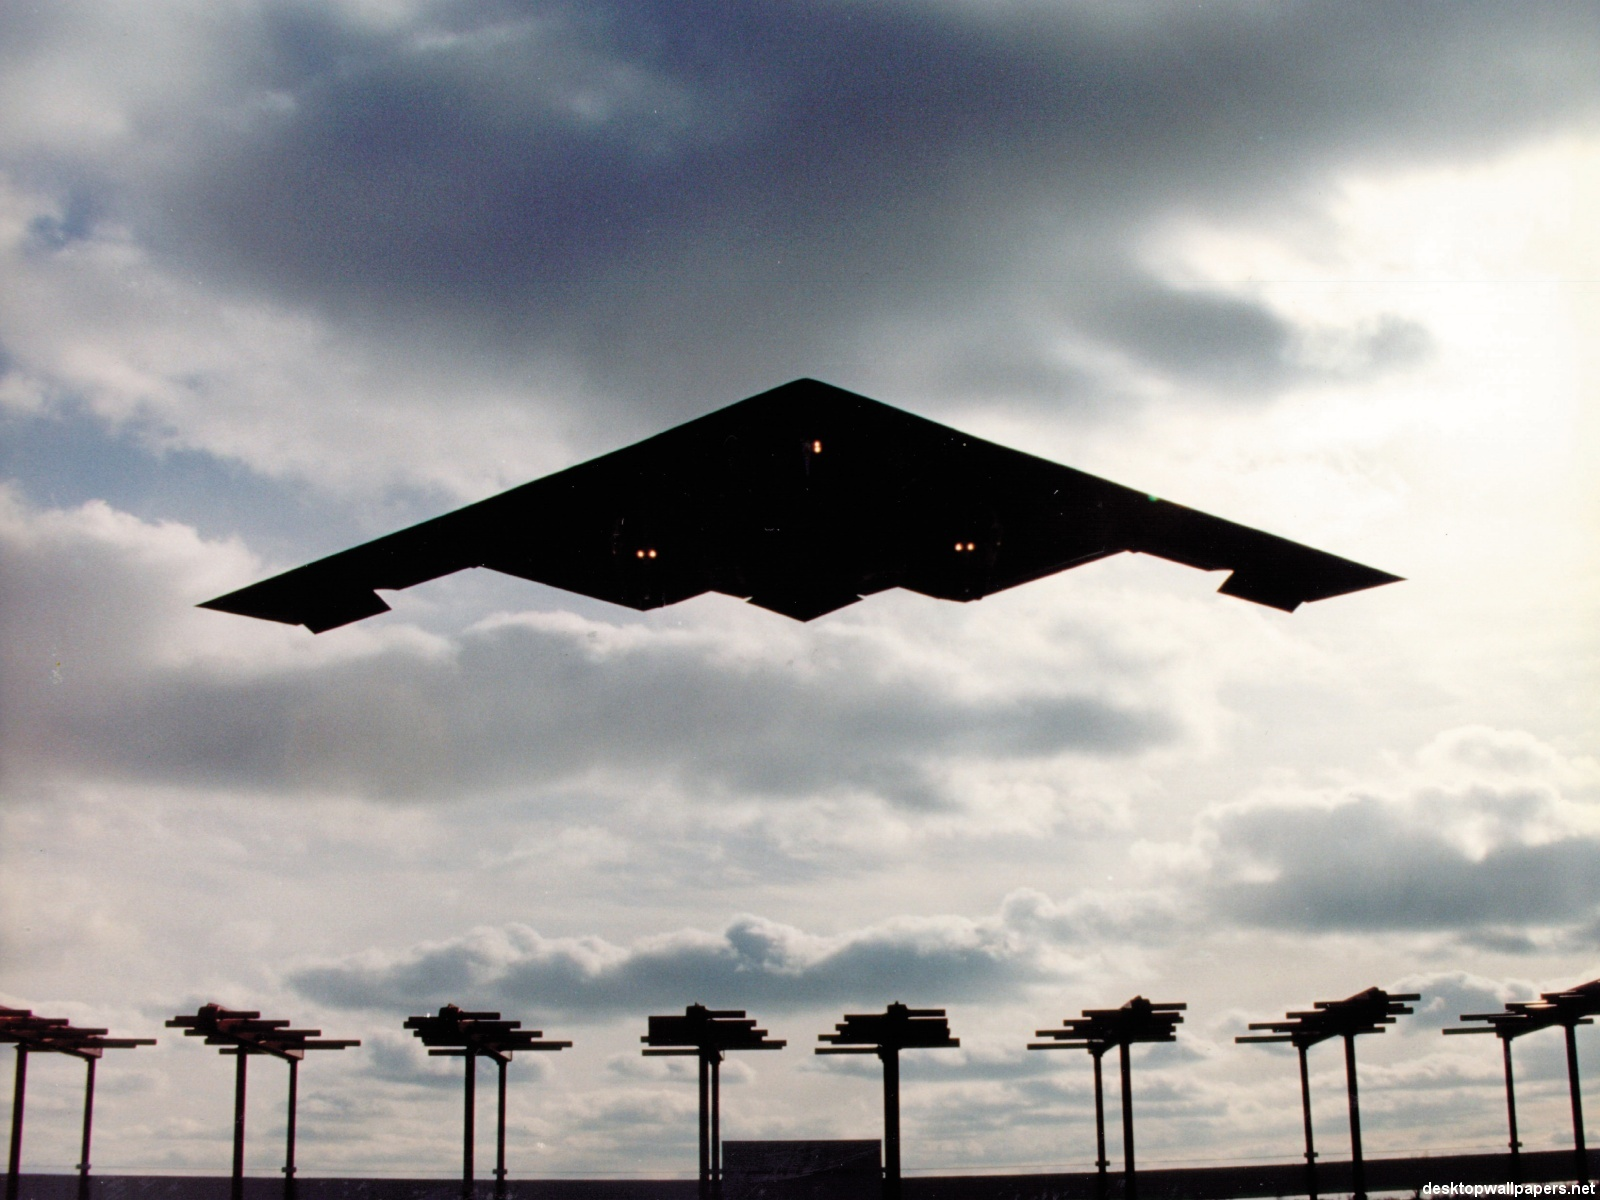 Stealth Bomber at desktopWallpapersnet 1600x1200